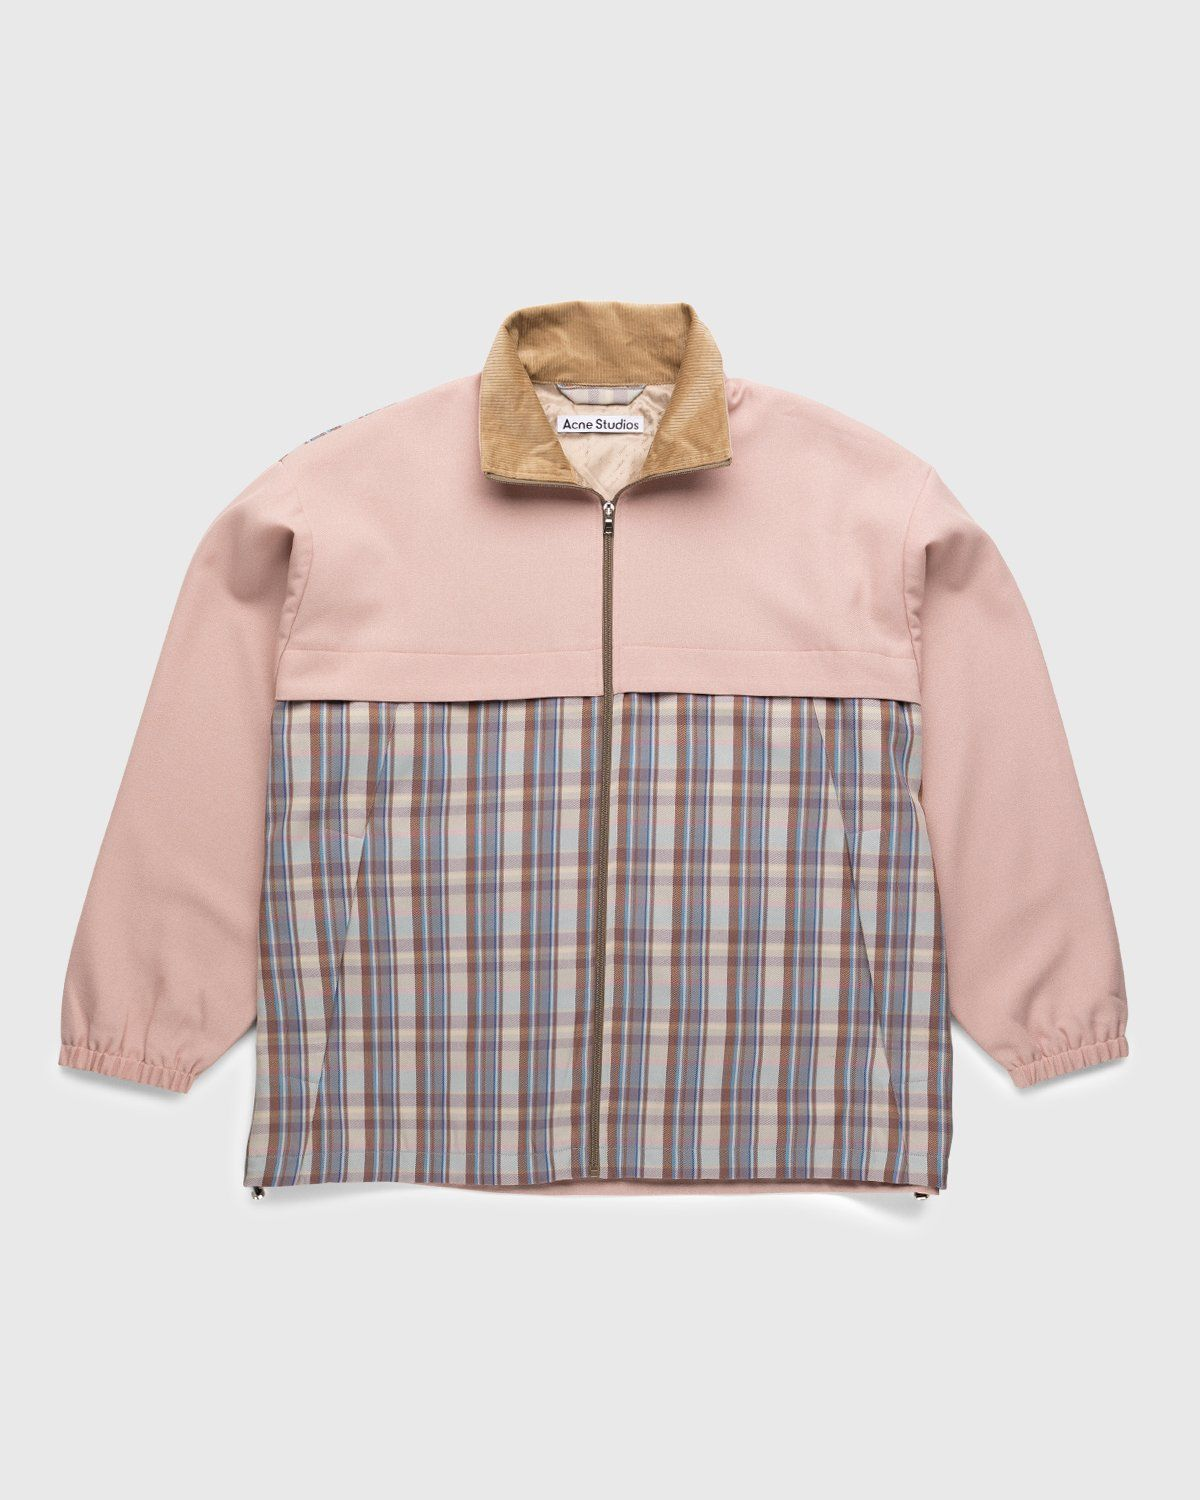 Acne Studios – Checked Twill Jacket Blossom Pink - Image 1